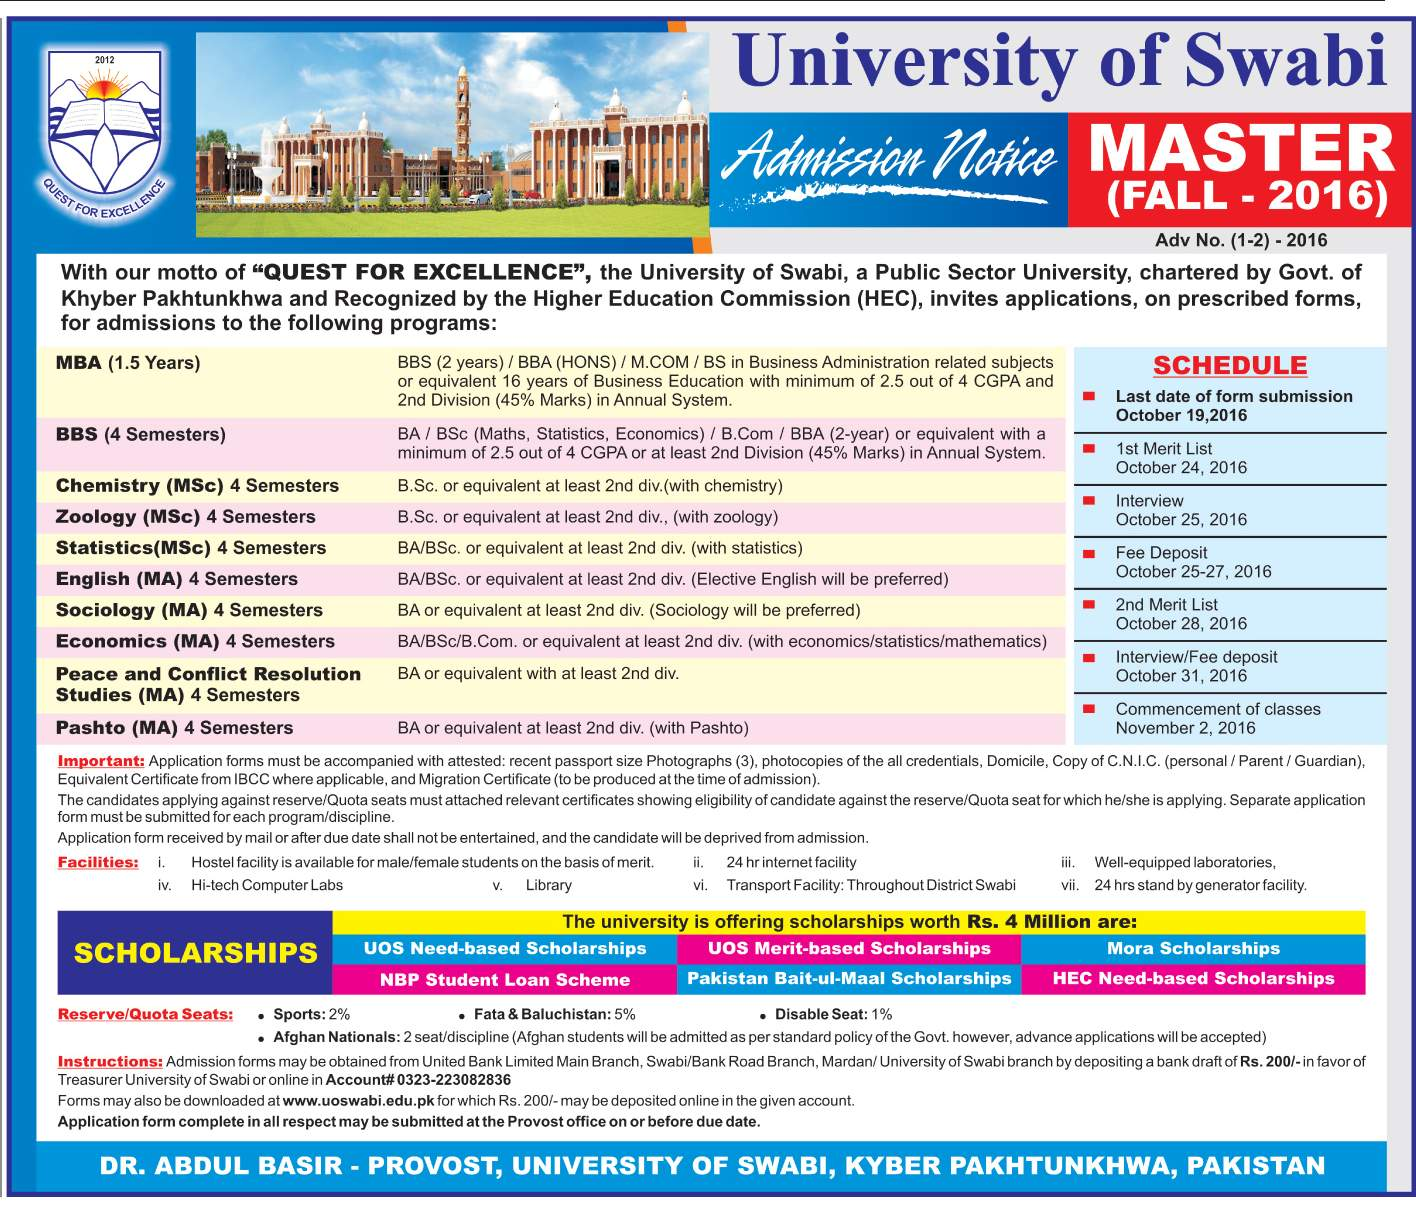 University of Swabi admission